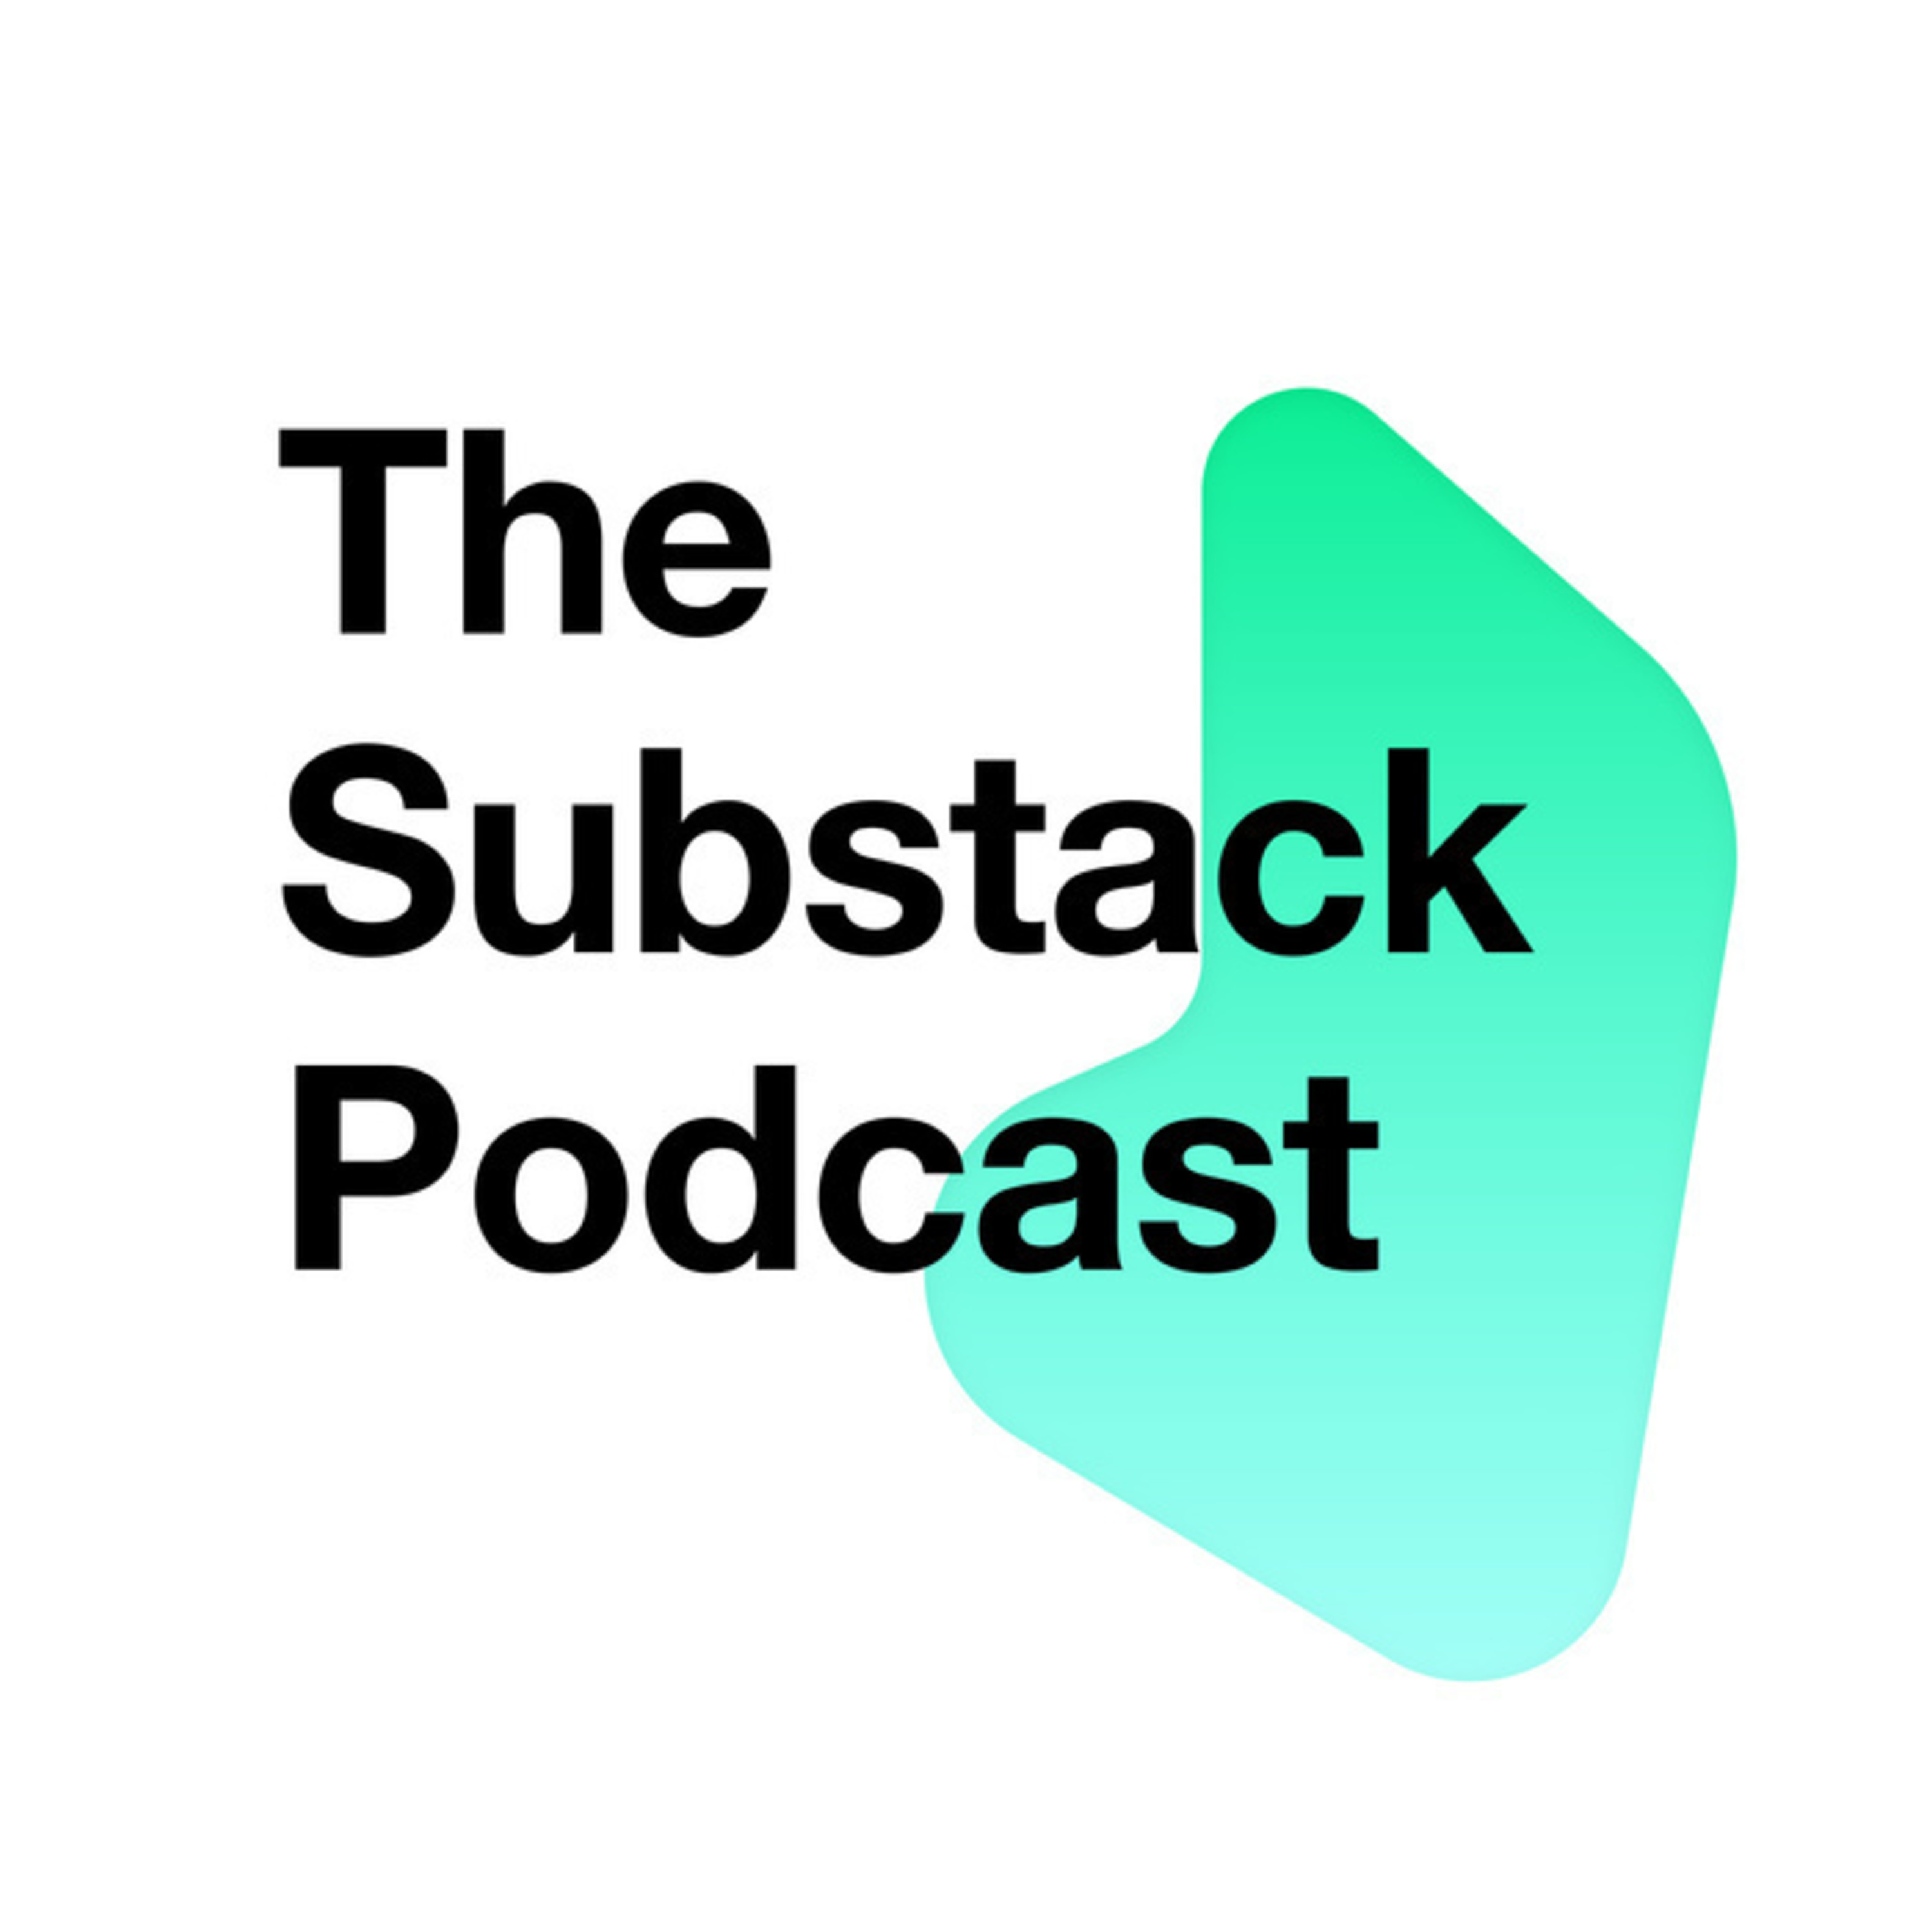 #004 – Rolling Stone's Matt Taibbi discusses the state of the media, his serial Substack novel, and the furor that almost brought him down